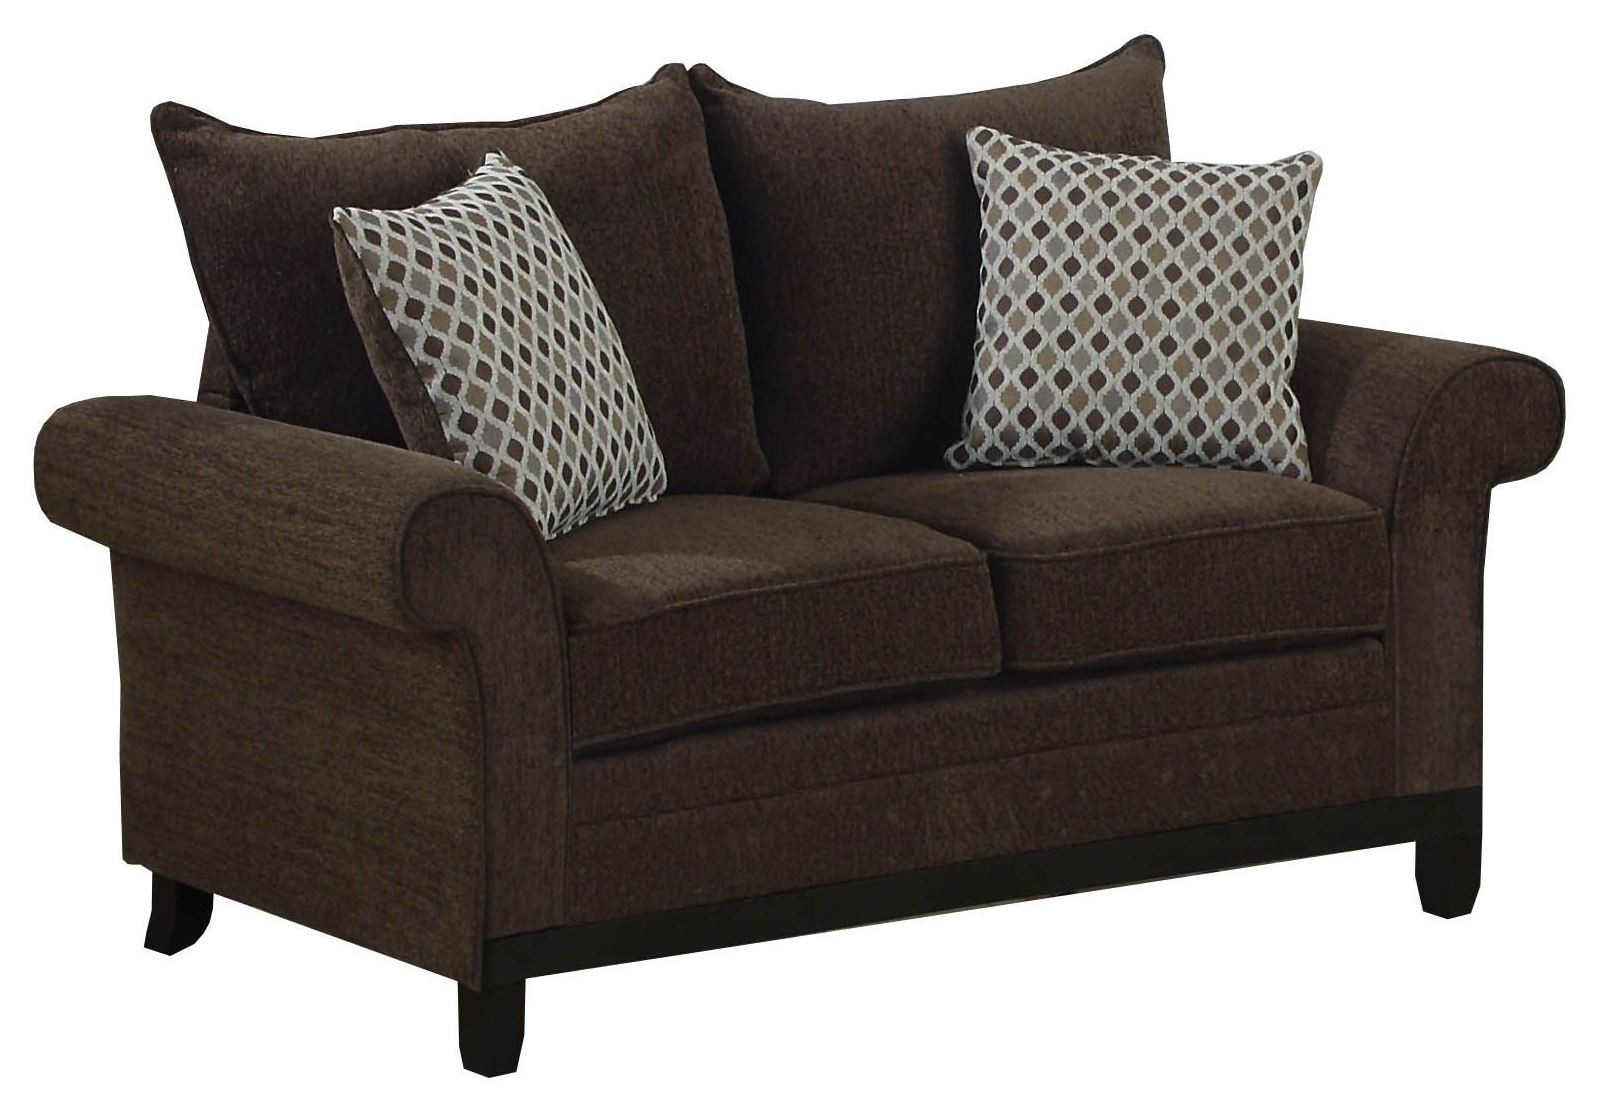 Chocolate Chenille Fabric Loveseat With 2 Accent Pillows 8732ch Monarch